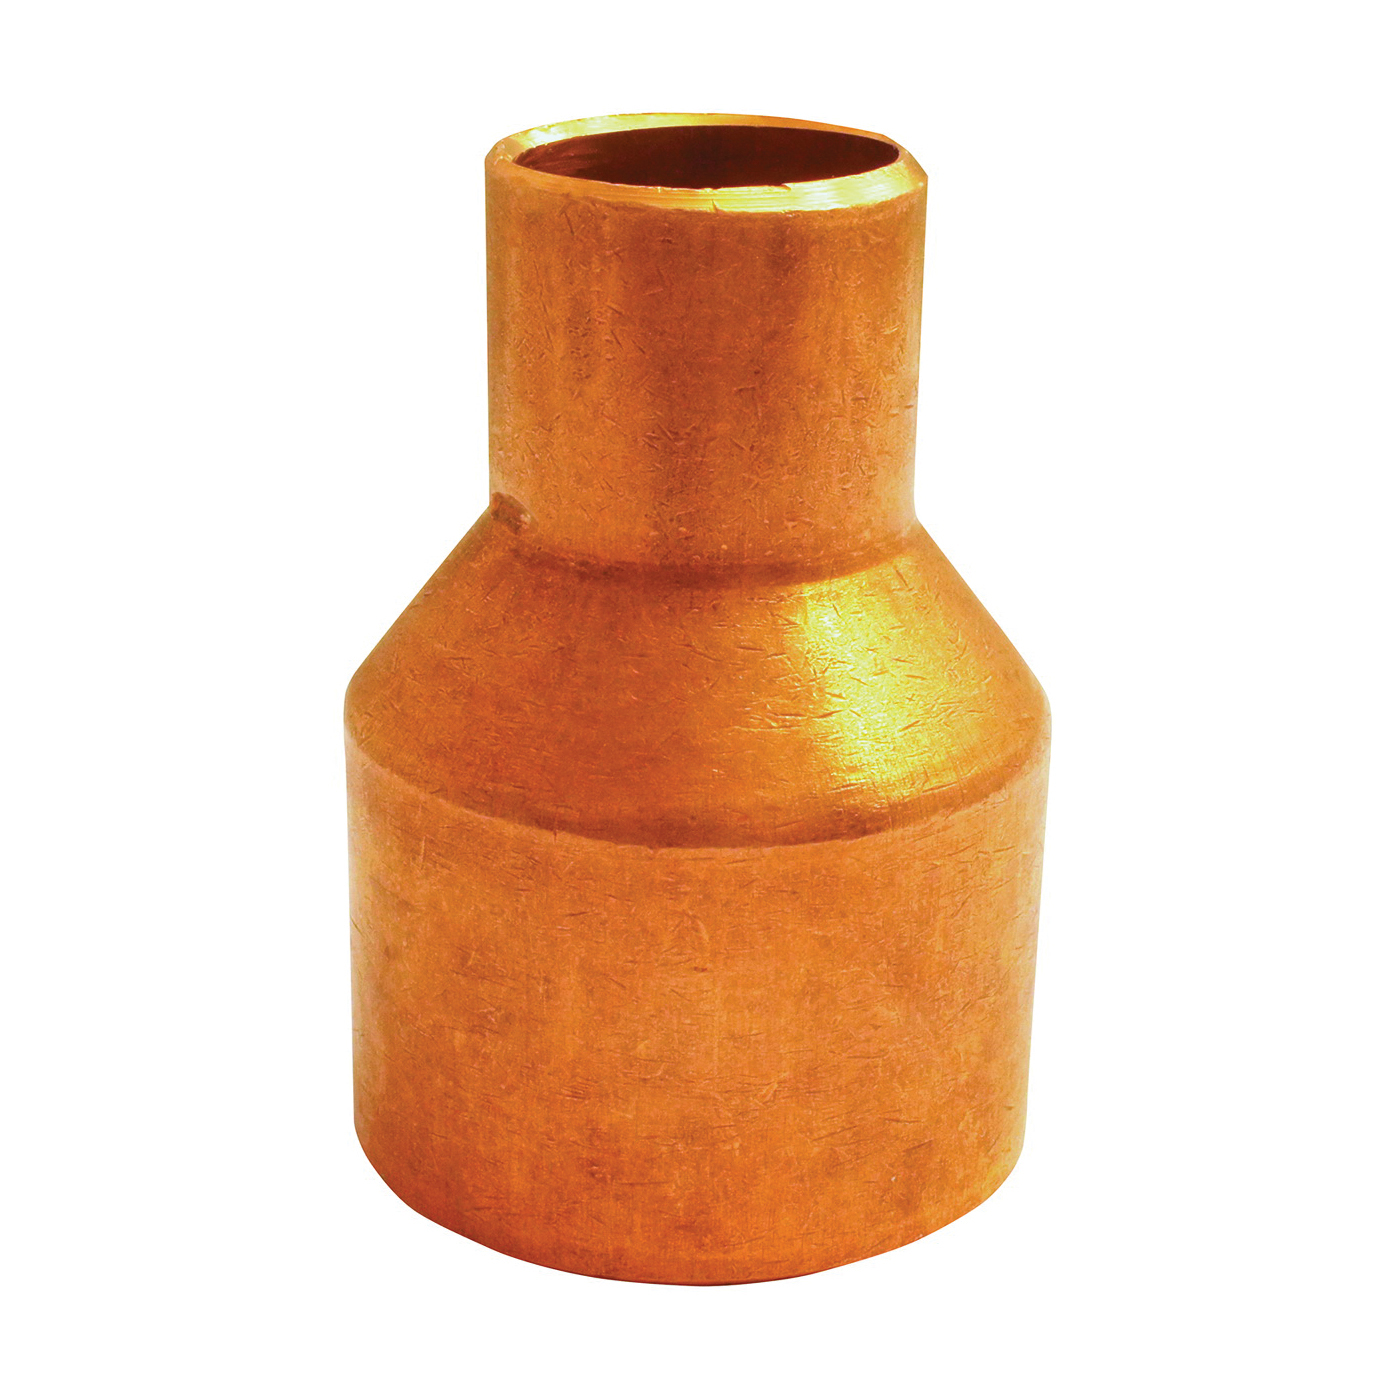 Picture of EPC 101R Series 30716 Reducer Coupler with Stop, 3/4 x 1/2 in, Sweat